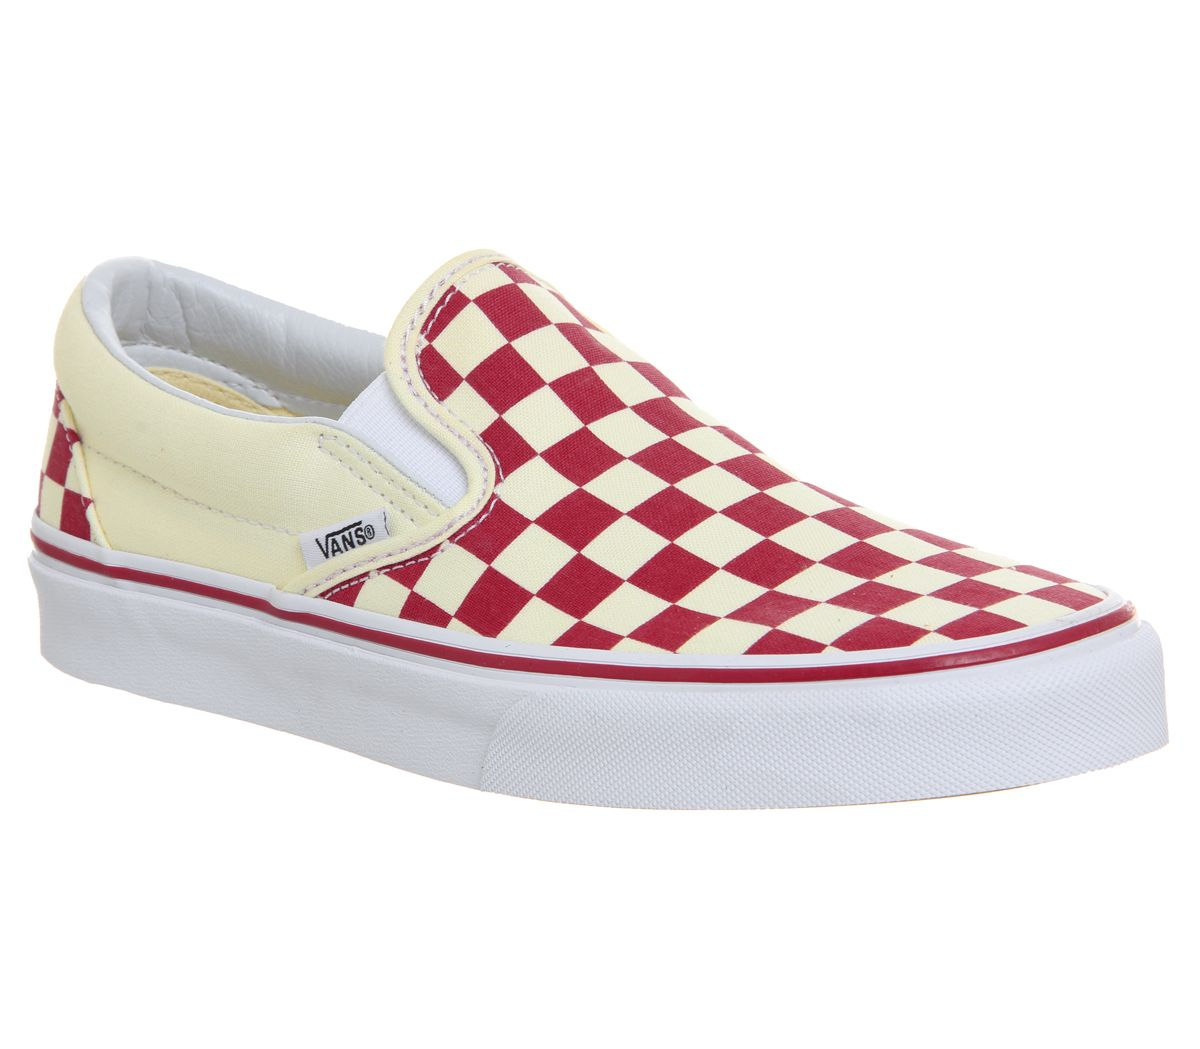 194b52e8e43 Vans Classic Slip On Trainers Racing Red Classic White Checkerboard ...